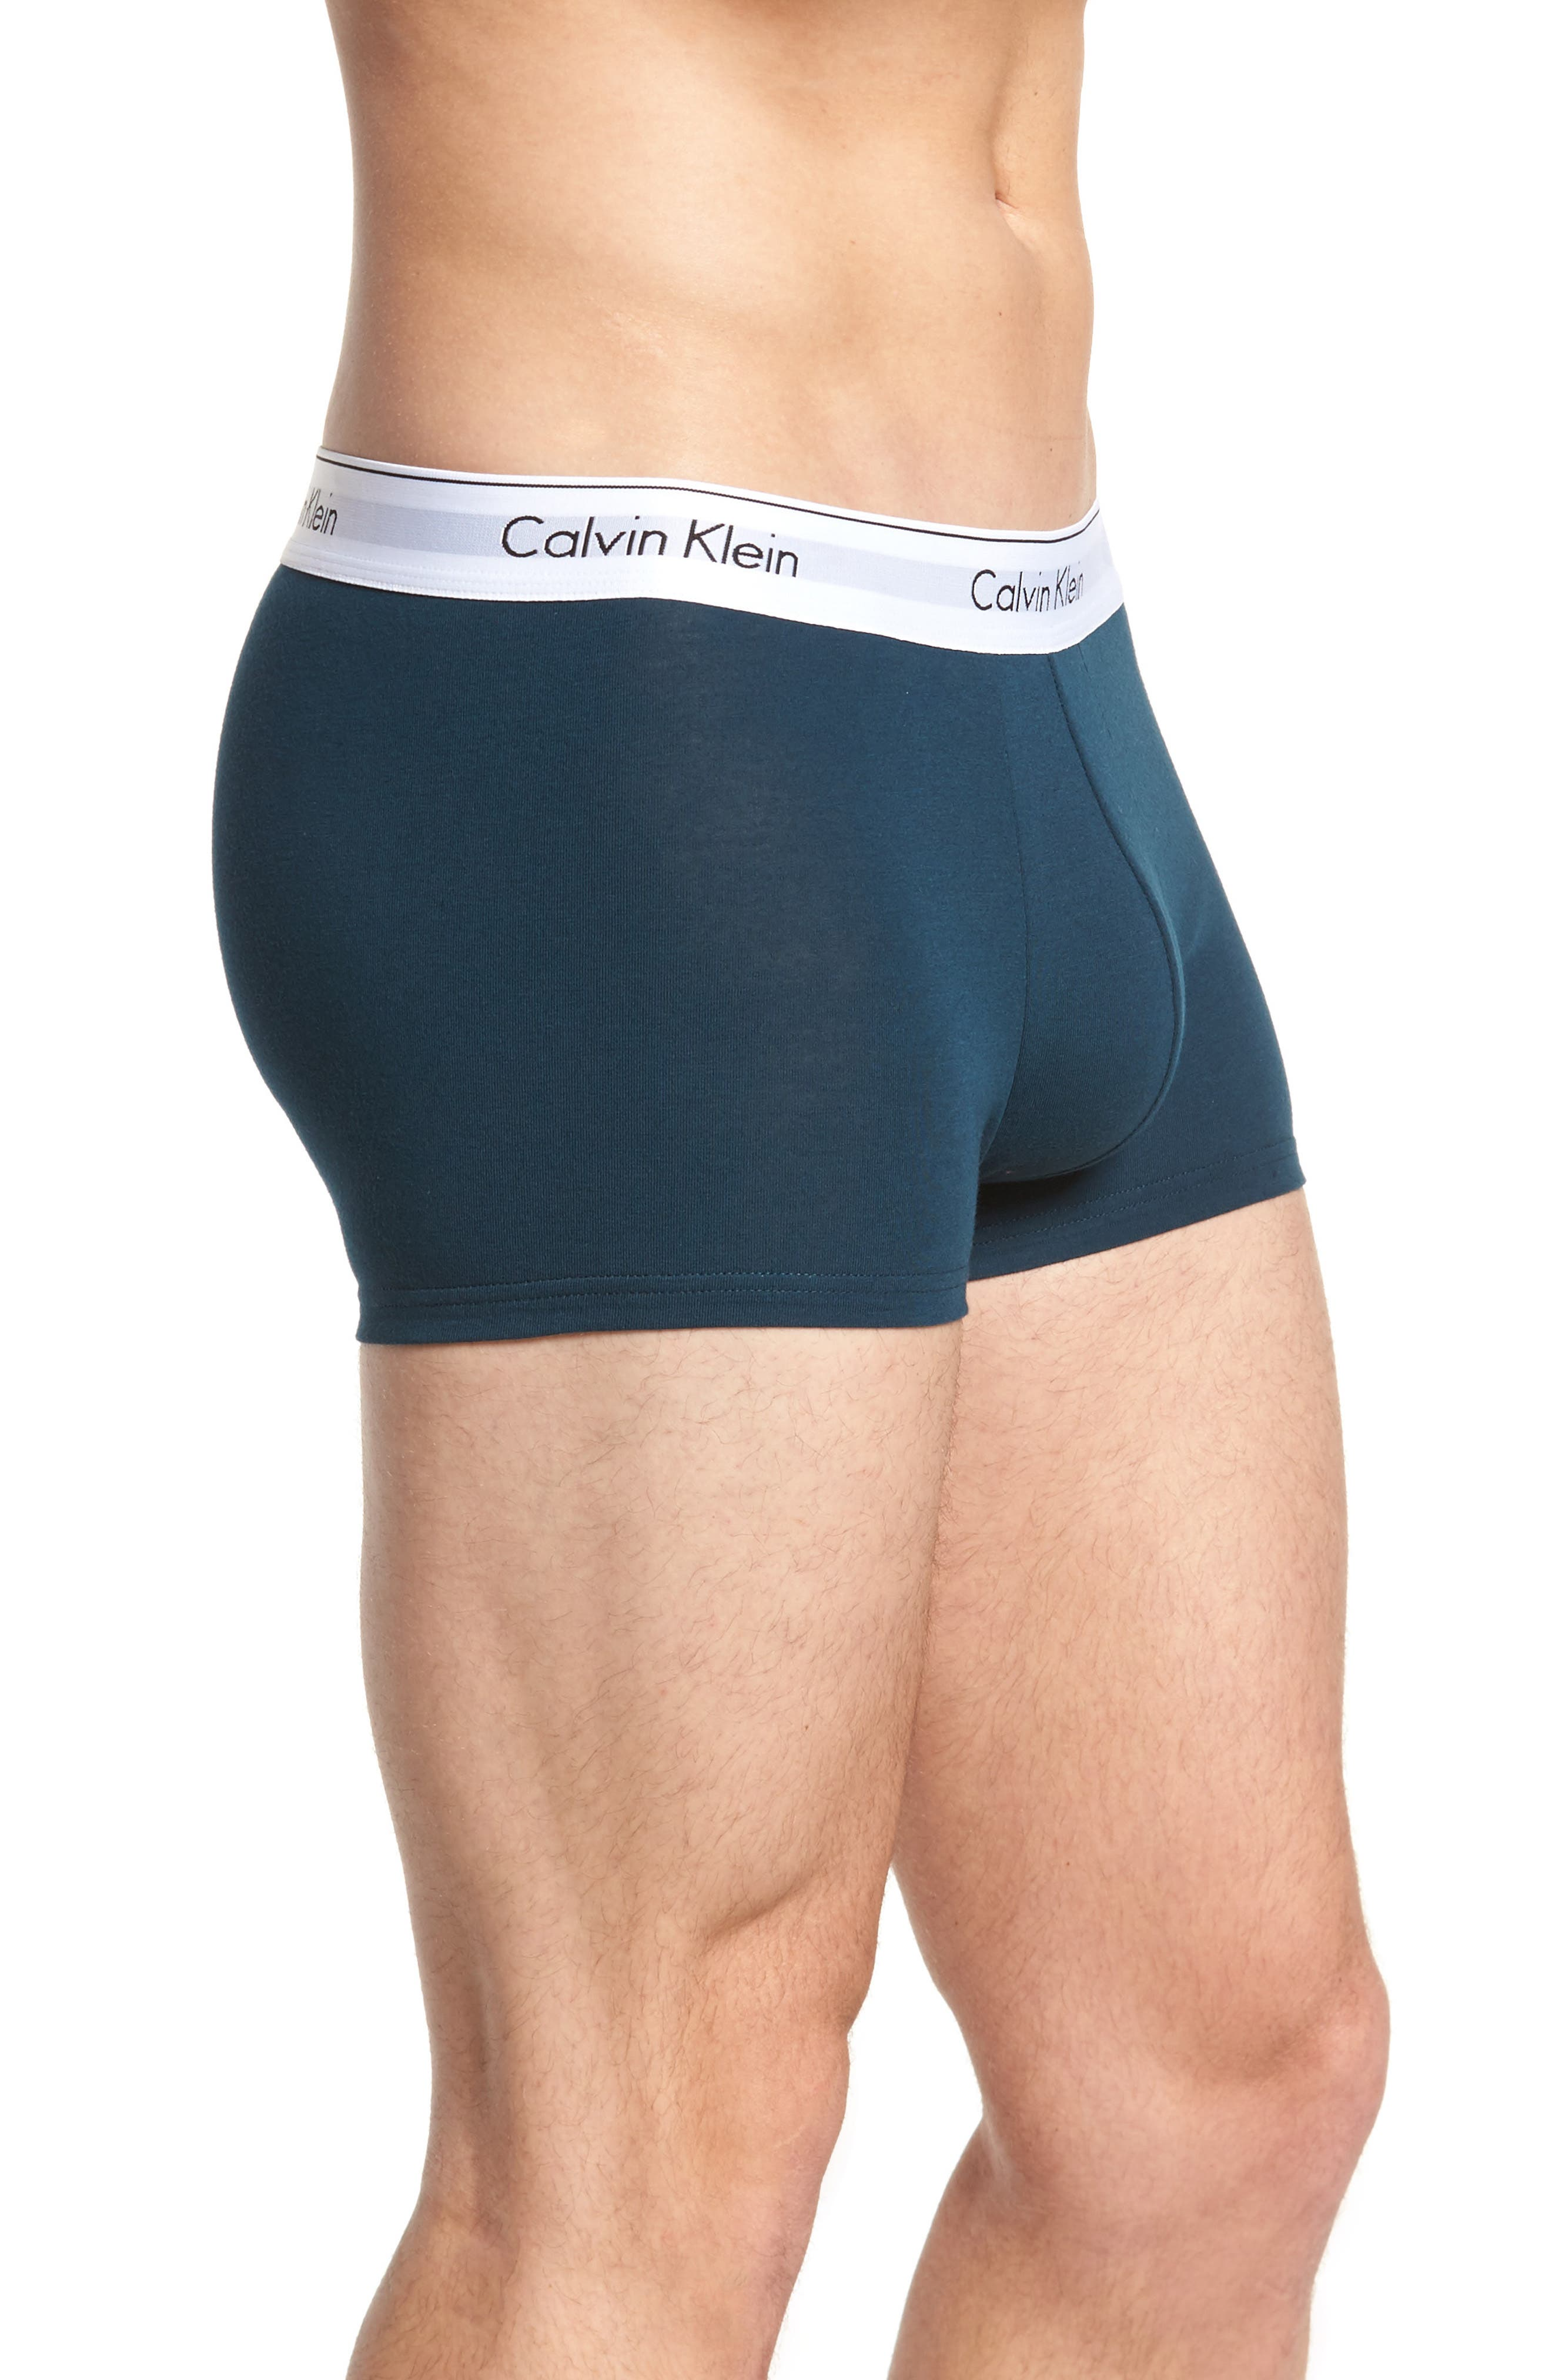 Assorted 2-Pack Stretch Cotton Trunks,                             Alternate thumbnail 4, color,                             Spellbound/ Black